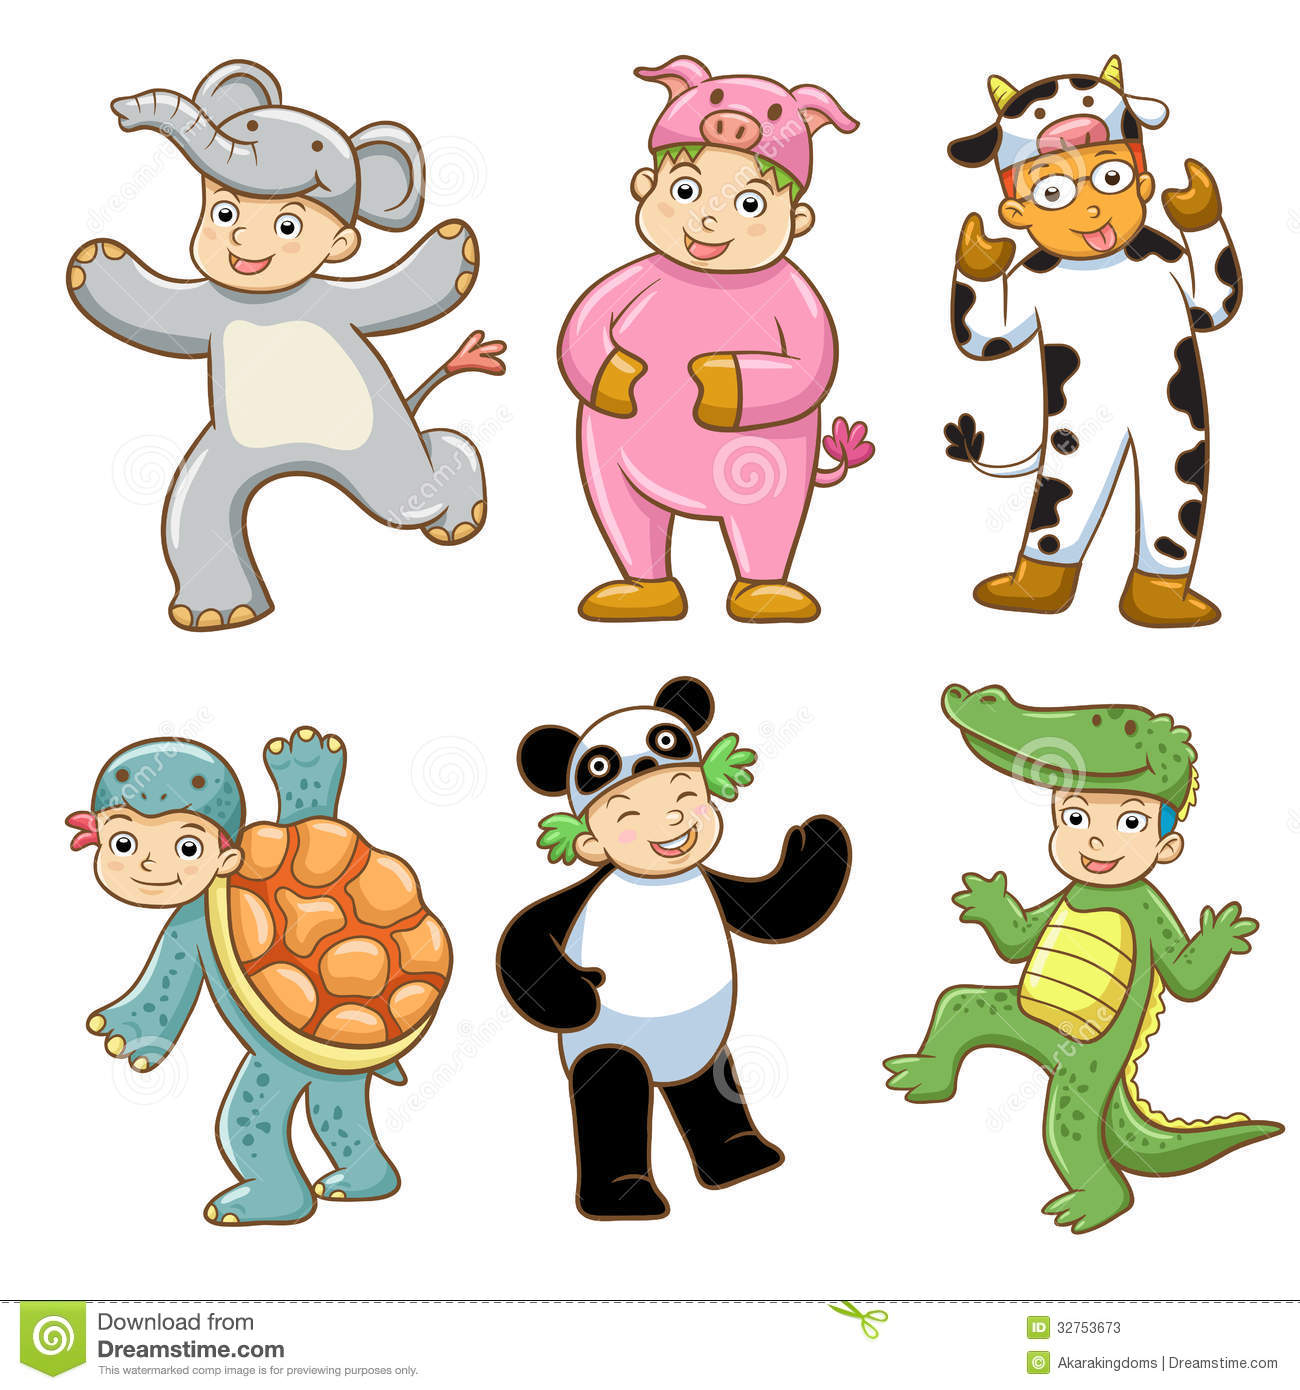 Kids with costumes clipart clip art freeuse library Kids animal costume clipart - ClipartFest clip art freeuse library